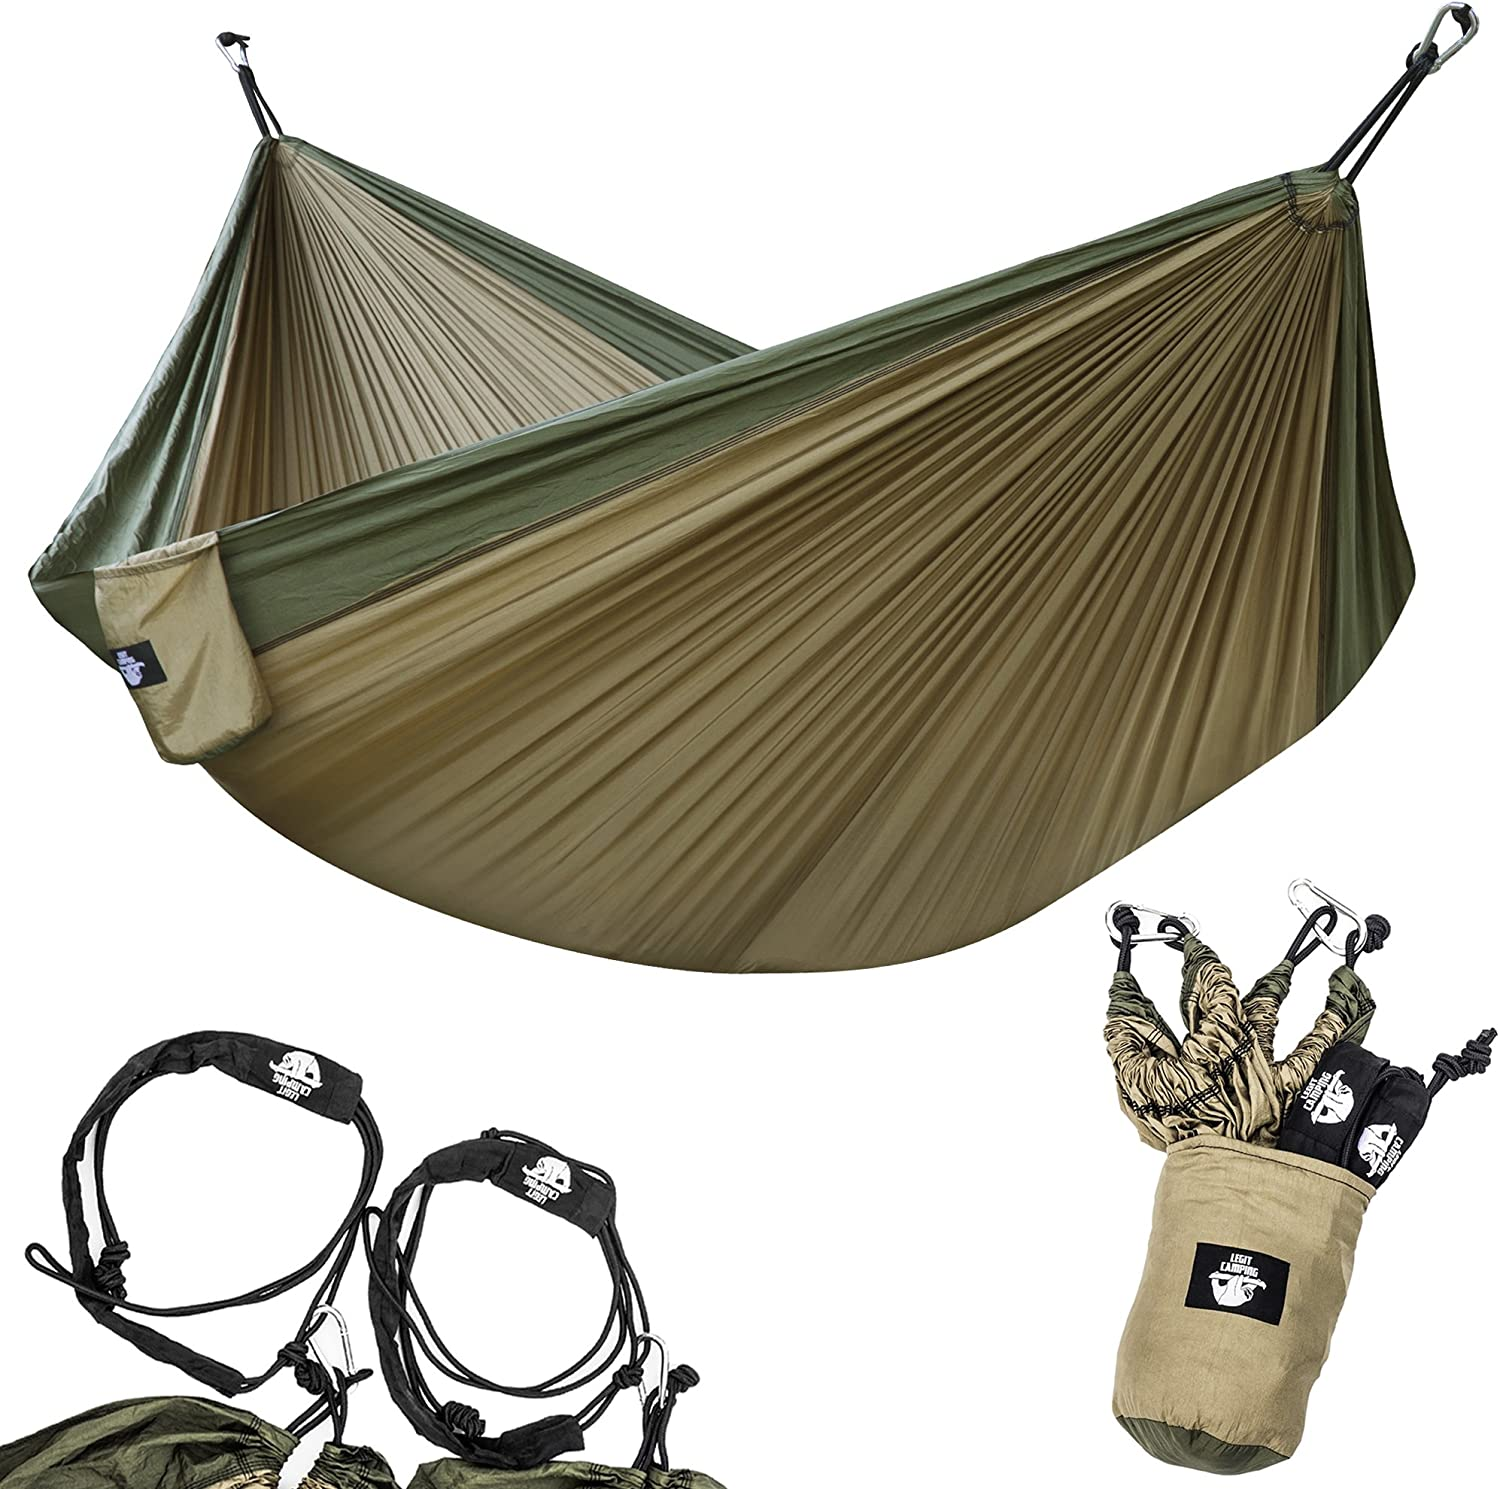 Legit Camping Portable Double Hammock - Khaki/Army Green - 400 lb Weight Capacity